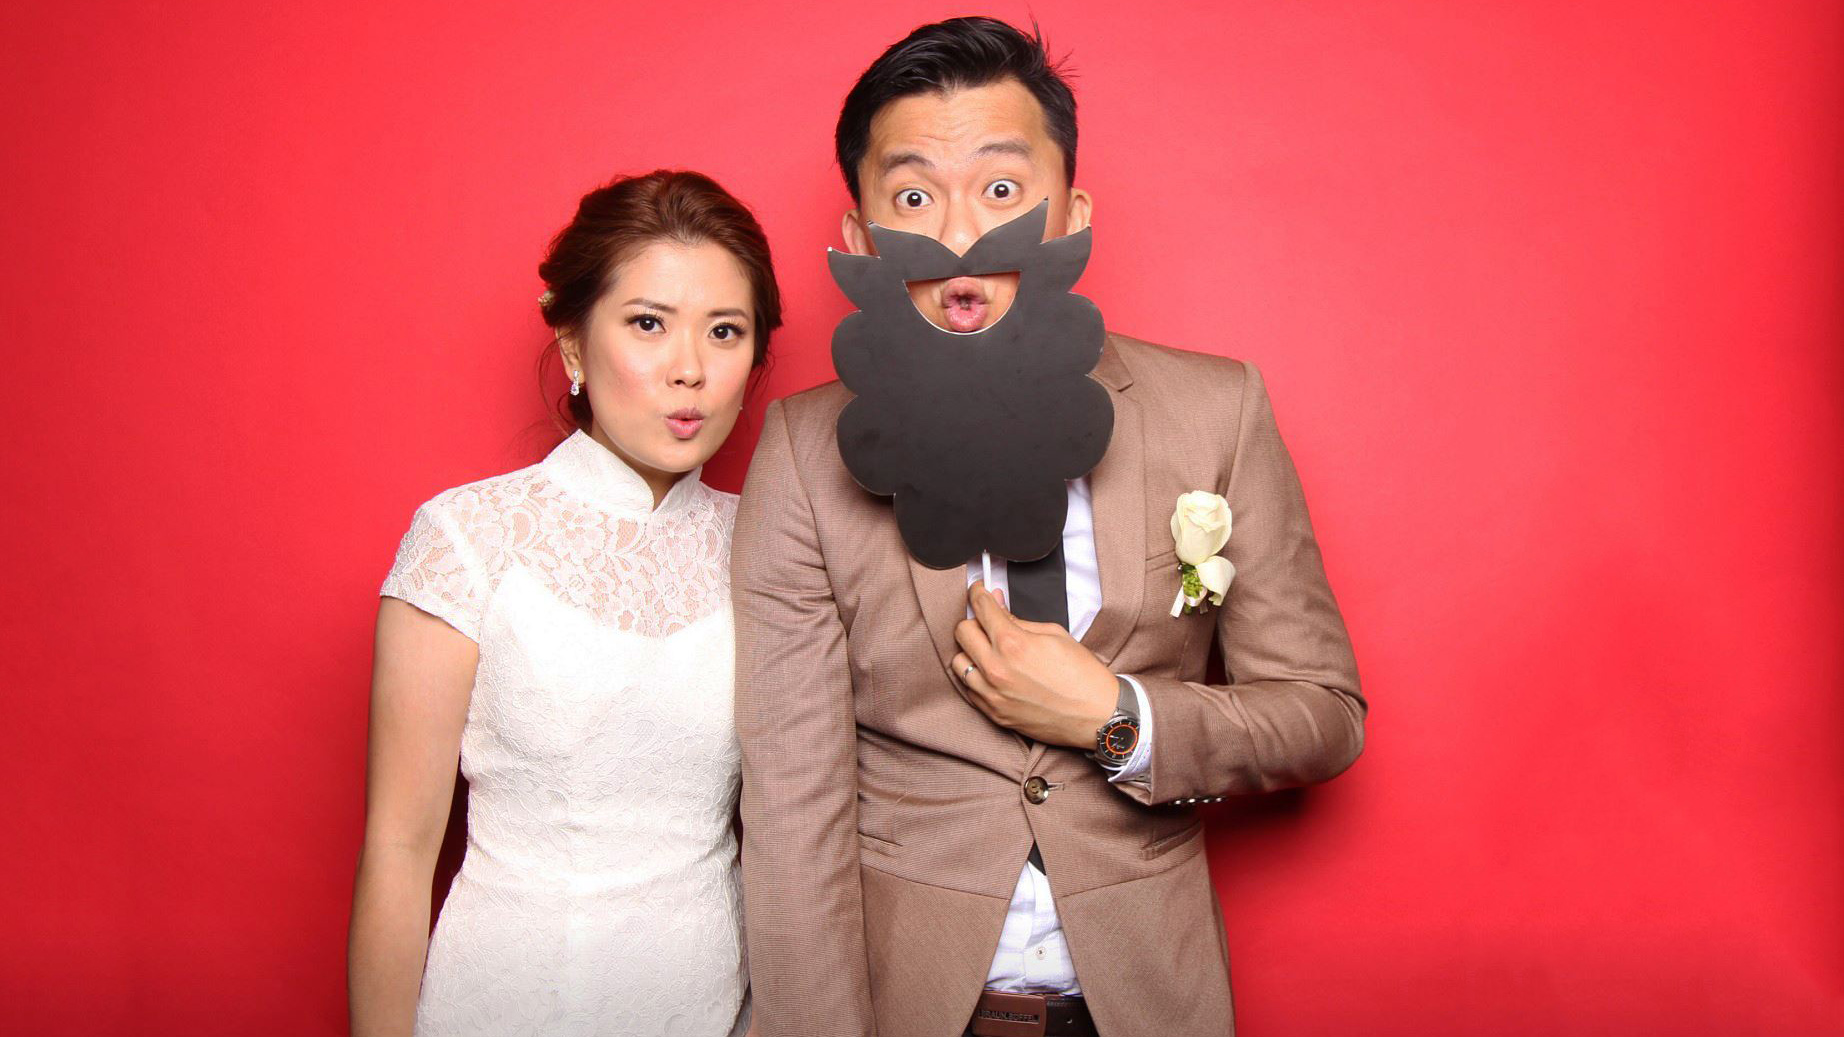 Fourstops • Singapore Photobooth • Alex & Mabel Wedding Photobooth